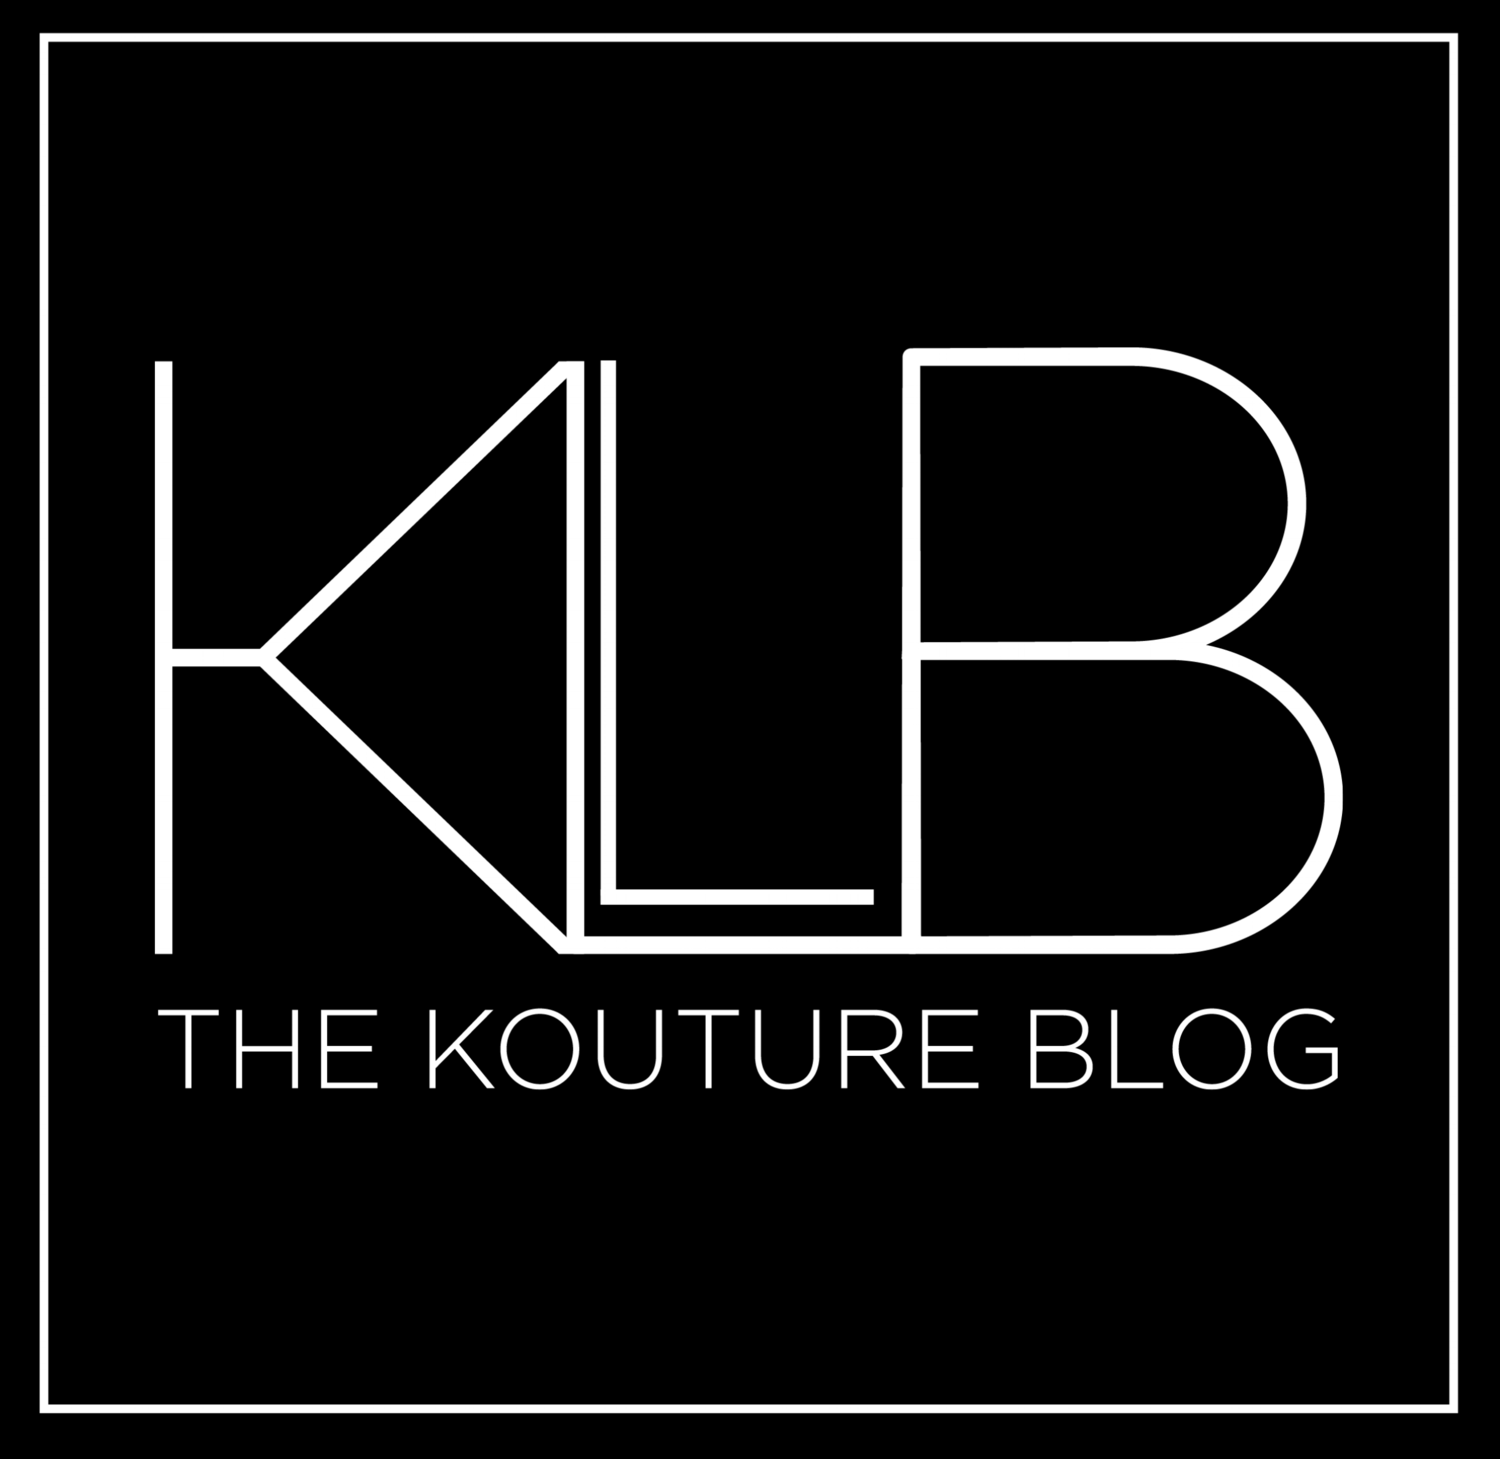 The Kouture Blog